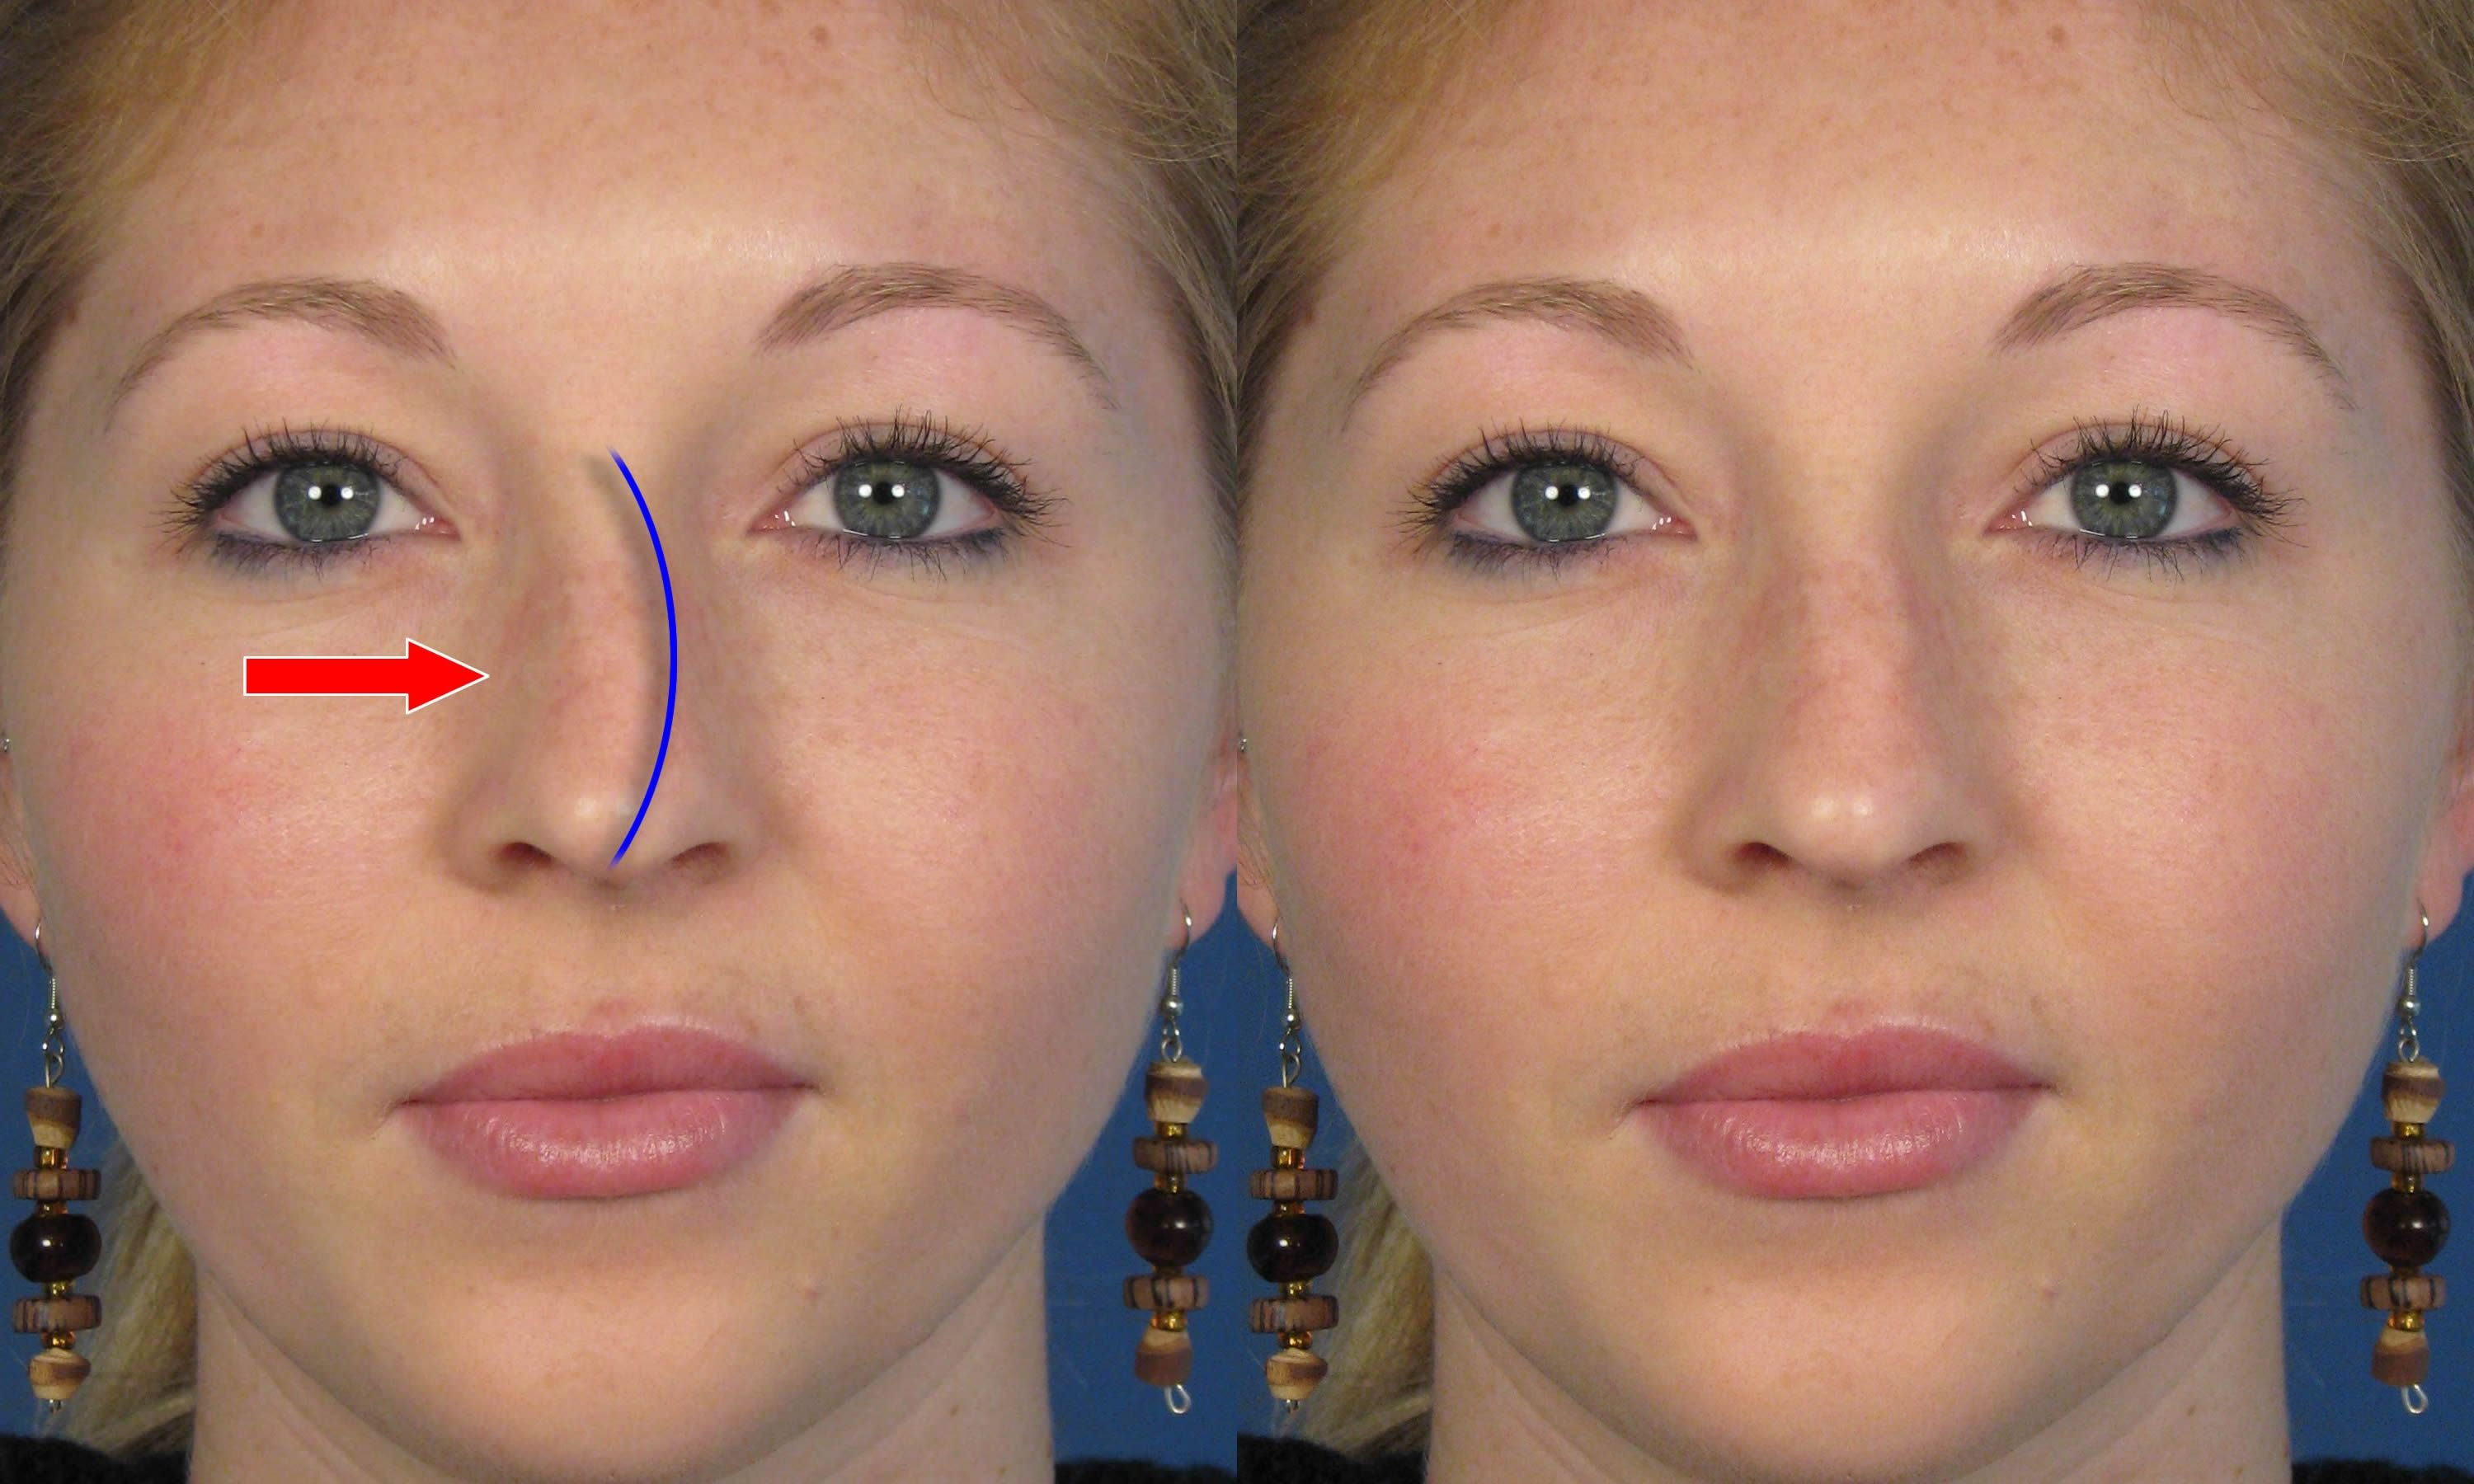 crooked Rhinoplasty Nose job before and after photos ...